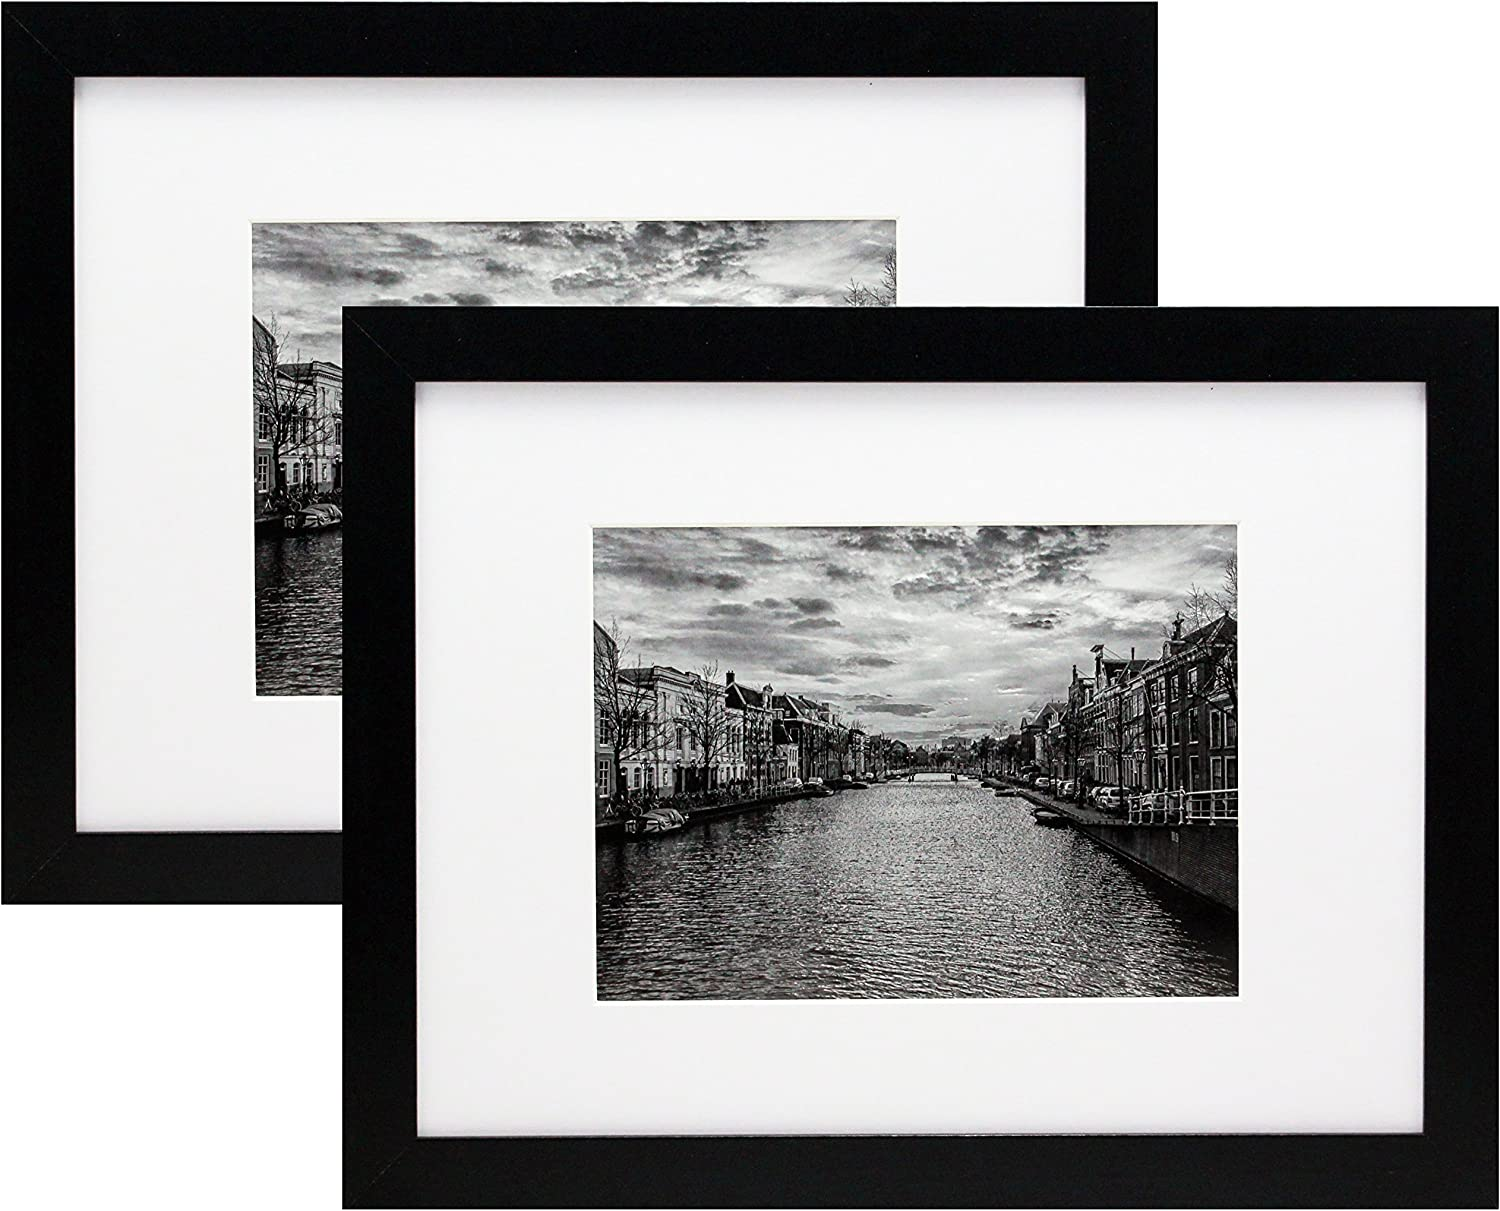 9x12 Limited price Black Gallery Picture Frame with Two Low price 6x8 - 2-Pack Mat